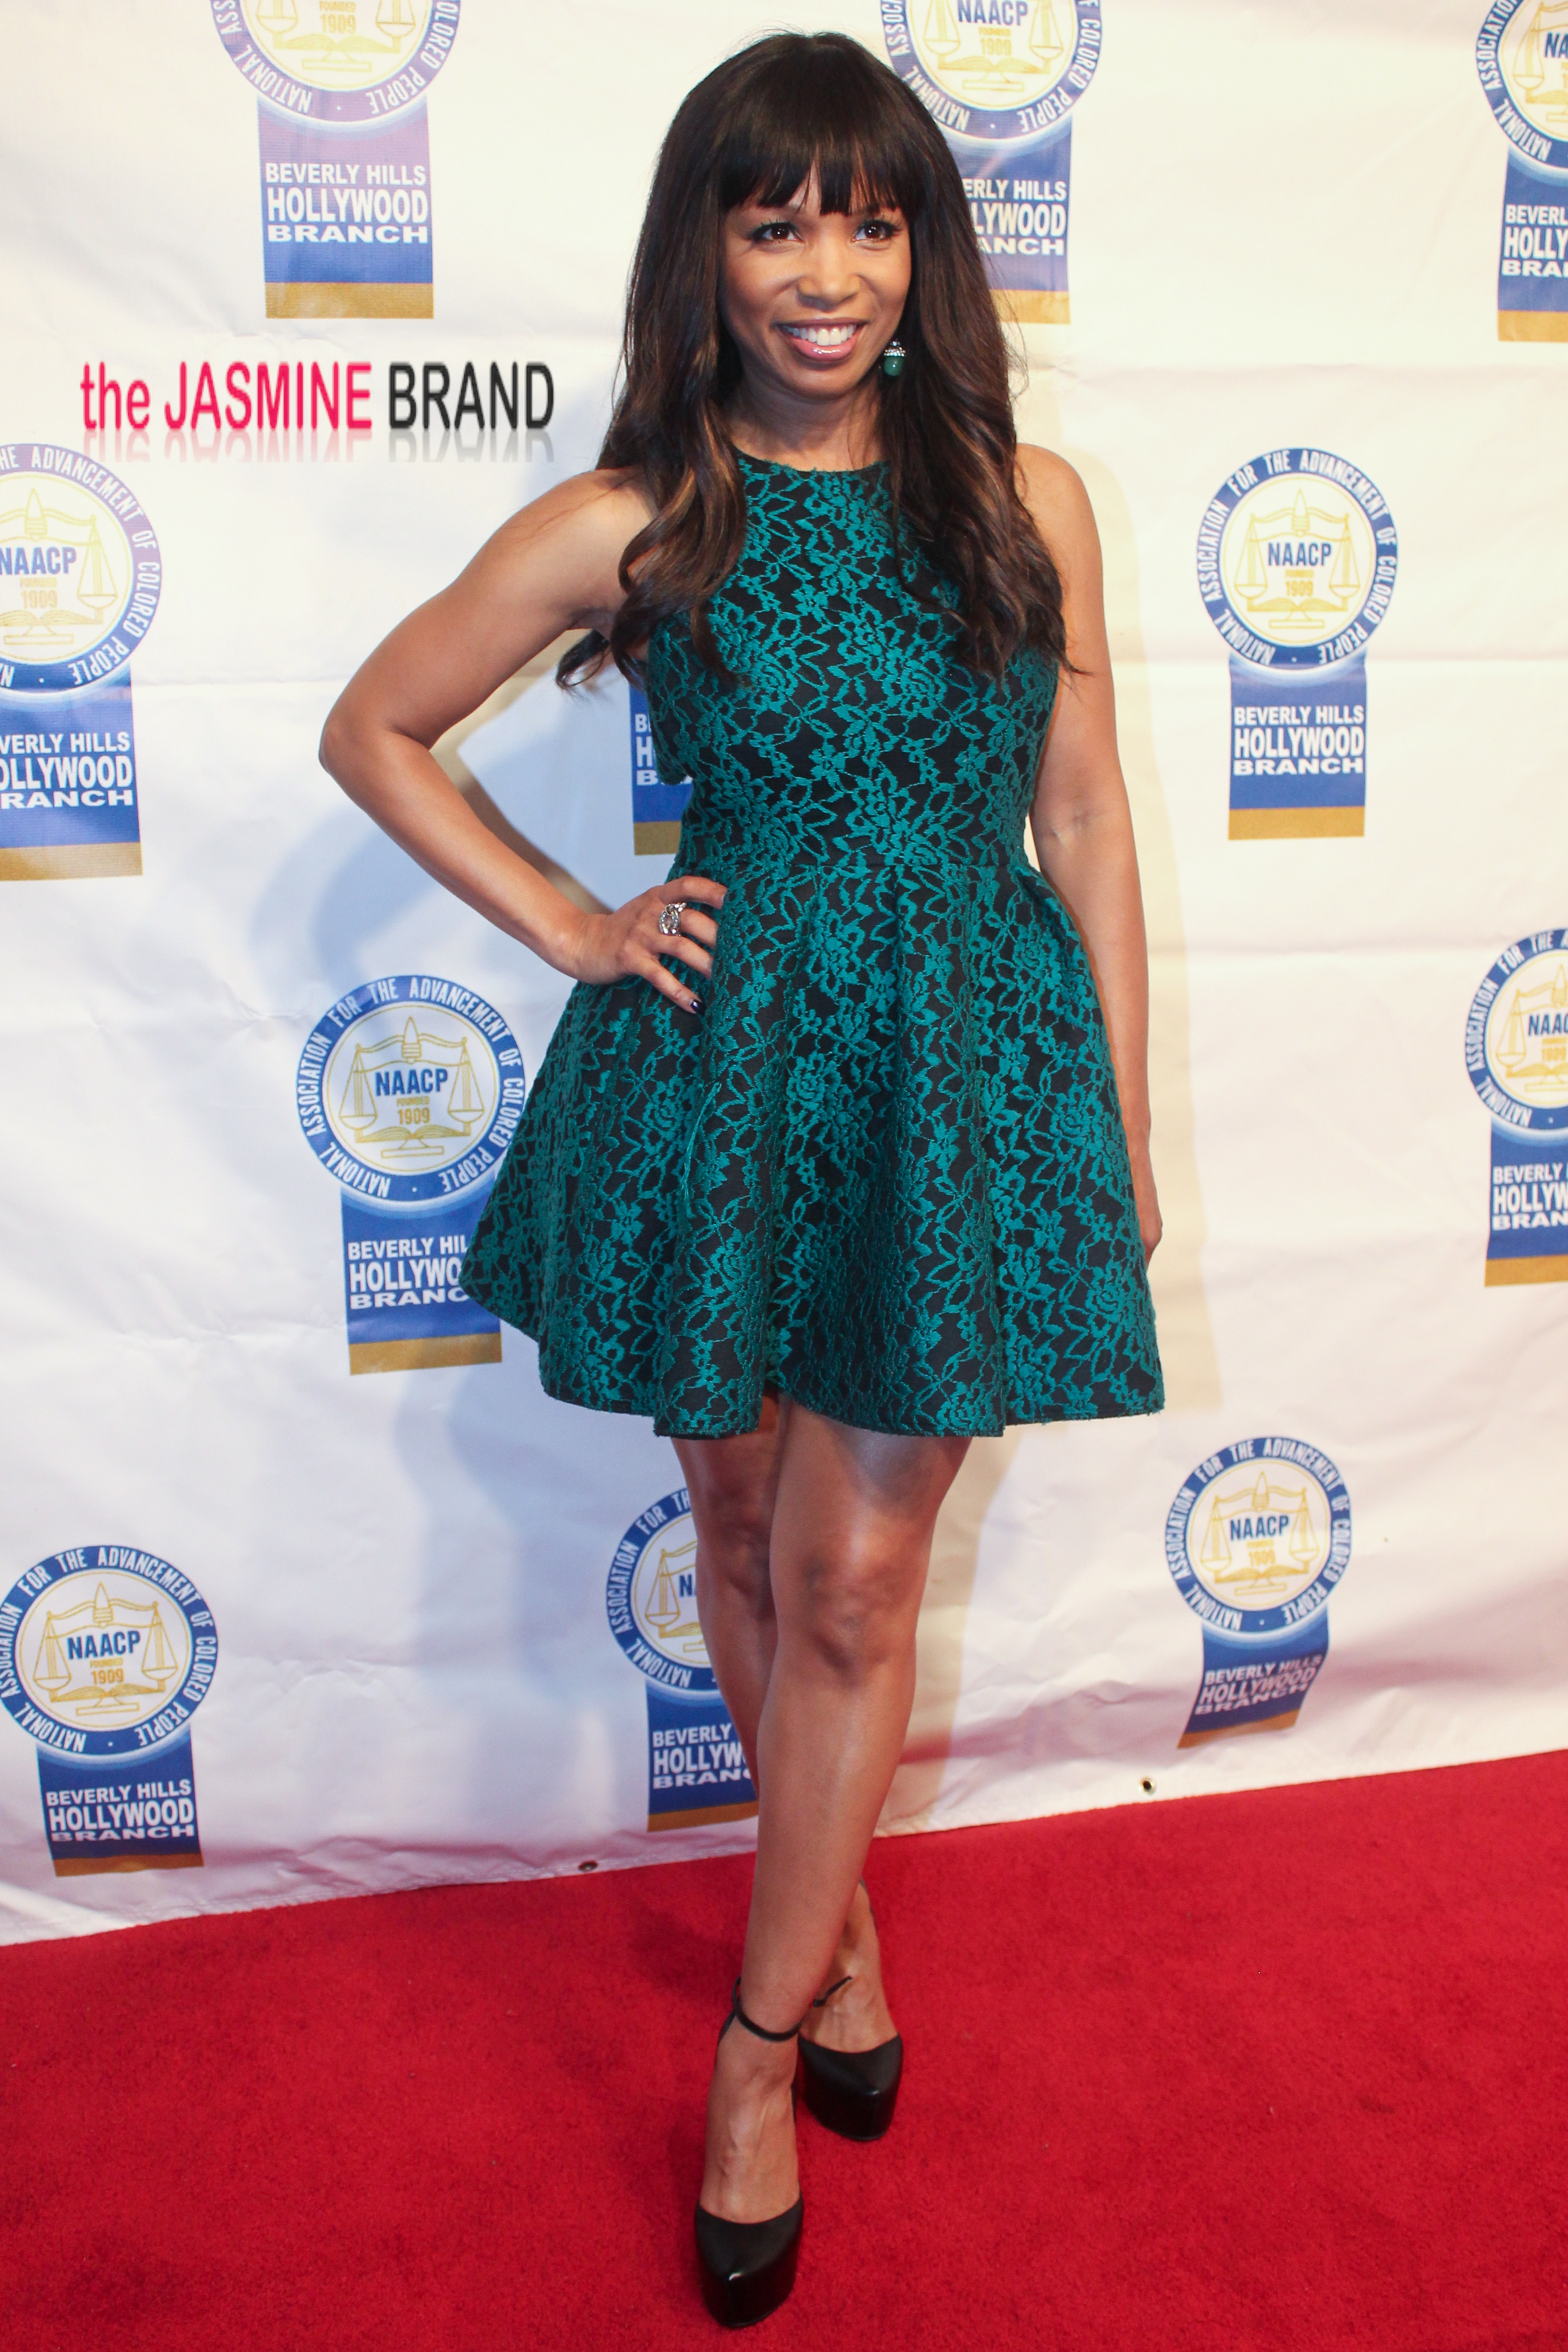 elise neal-naacp theater awards 2013-the jasmine brand